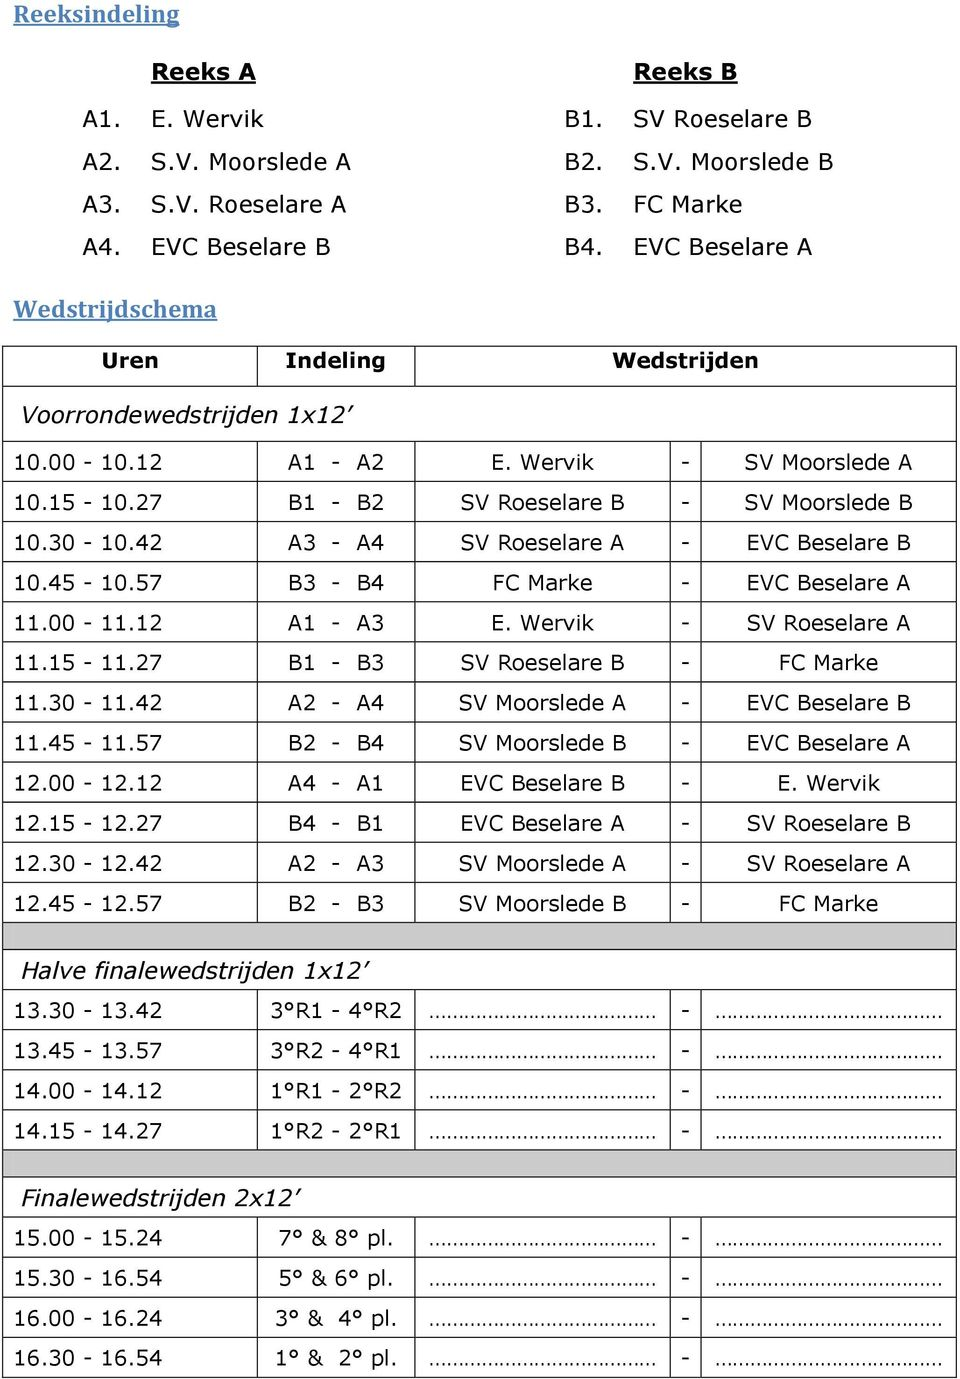 42 A3 - A4 SV Roeselare A - EVC Beselare B 10.45-10.57 B3 - B4 FC Marke - EVC Beselare A 11.00-11.12 A1 - A3 E. Wervik - SV Roeselare A 11.15-11.27 B1 - B3 SV Roeselare B - FC Marke 11.30-11.